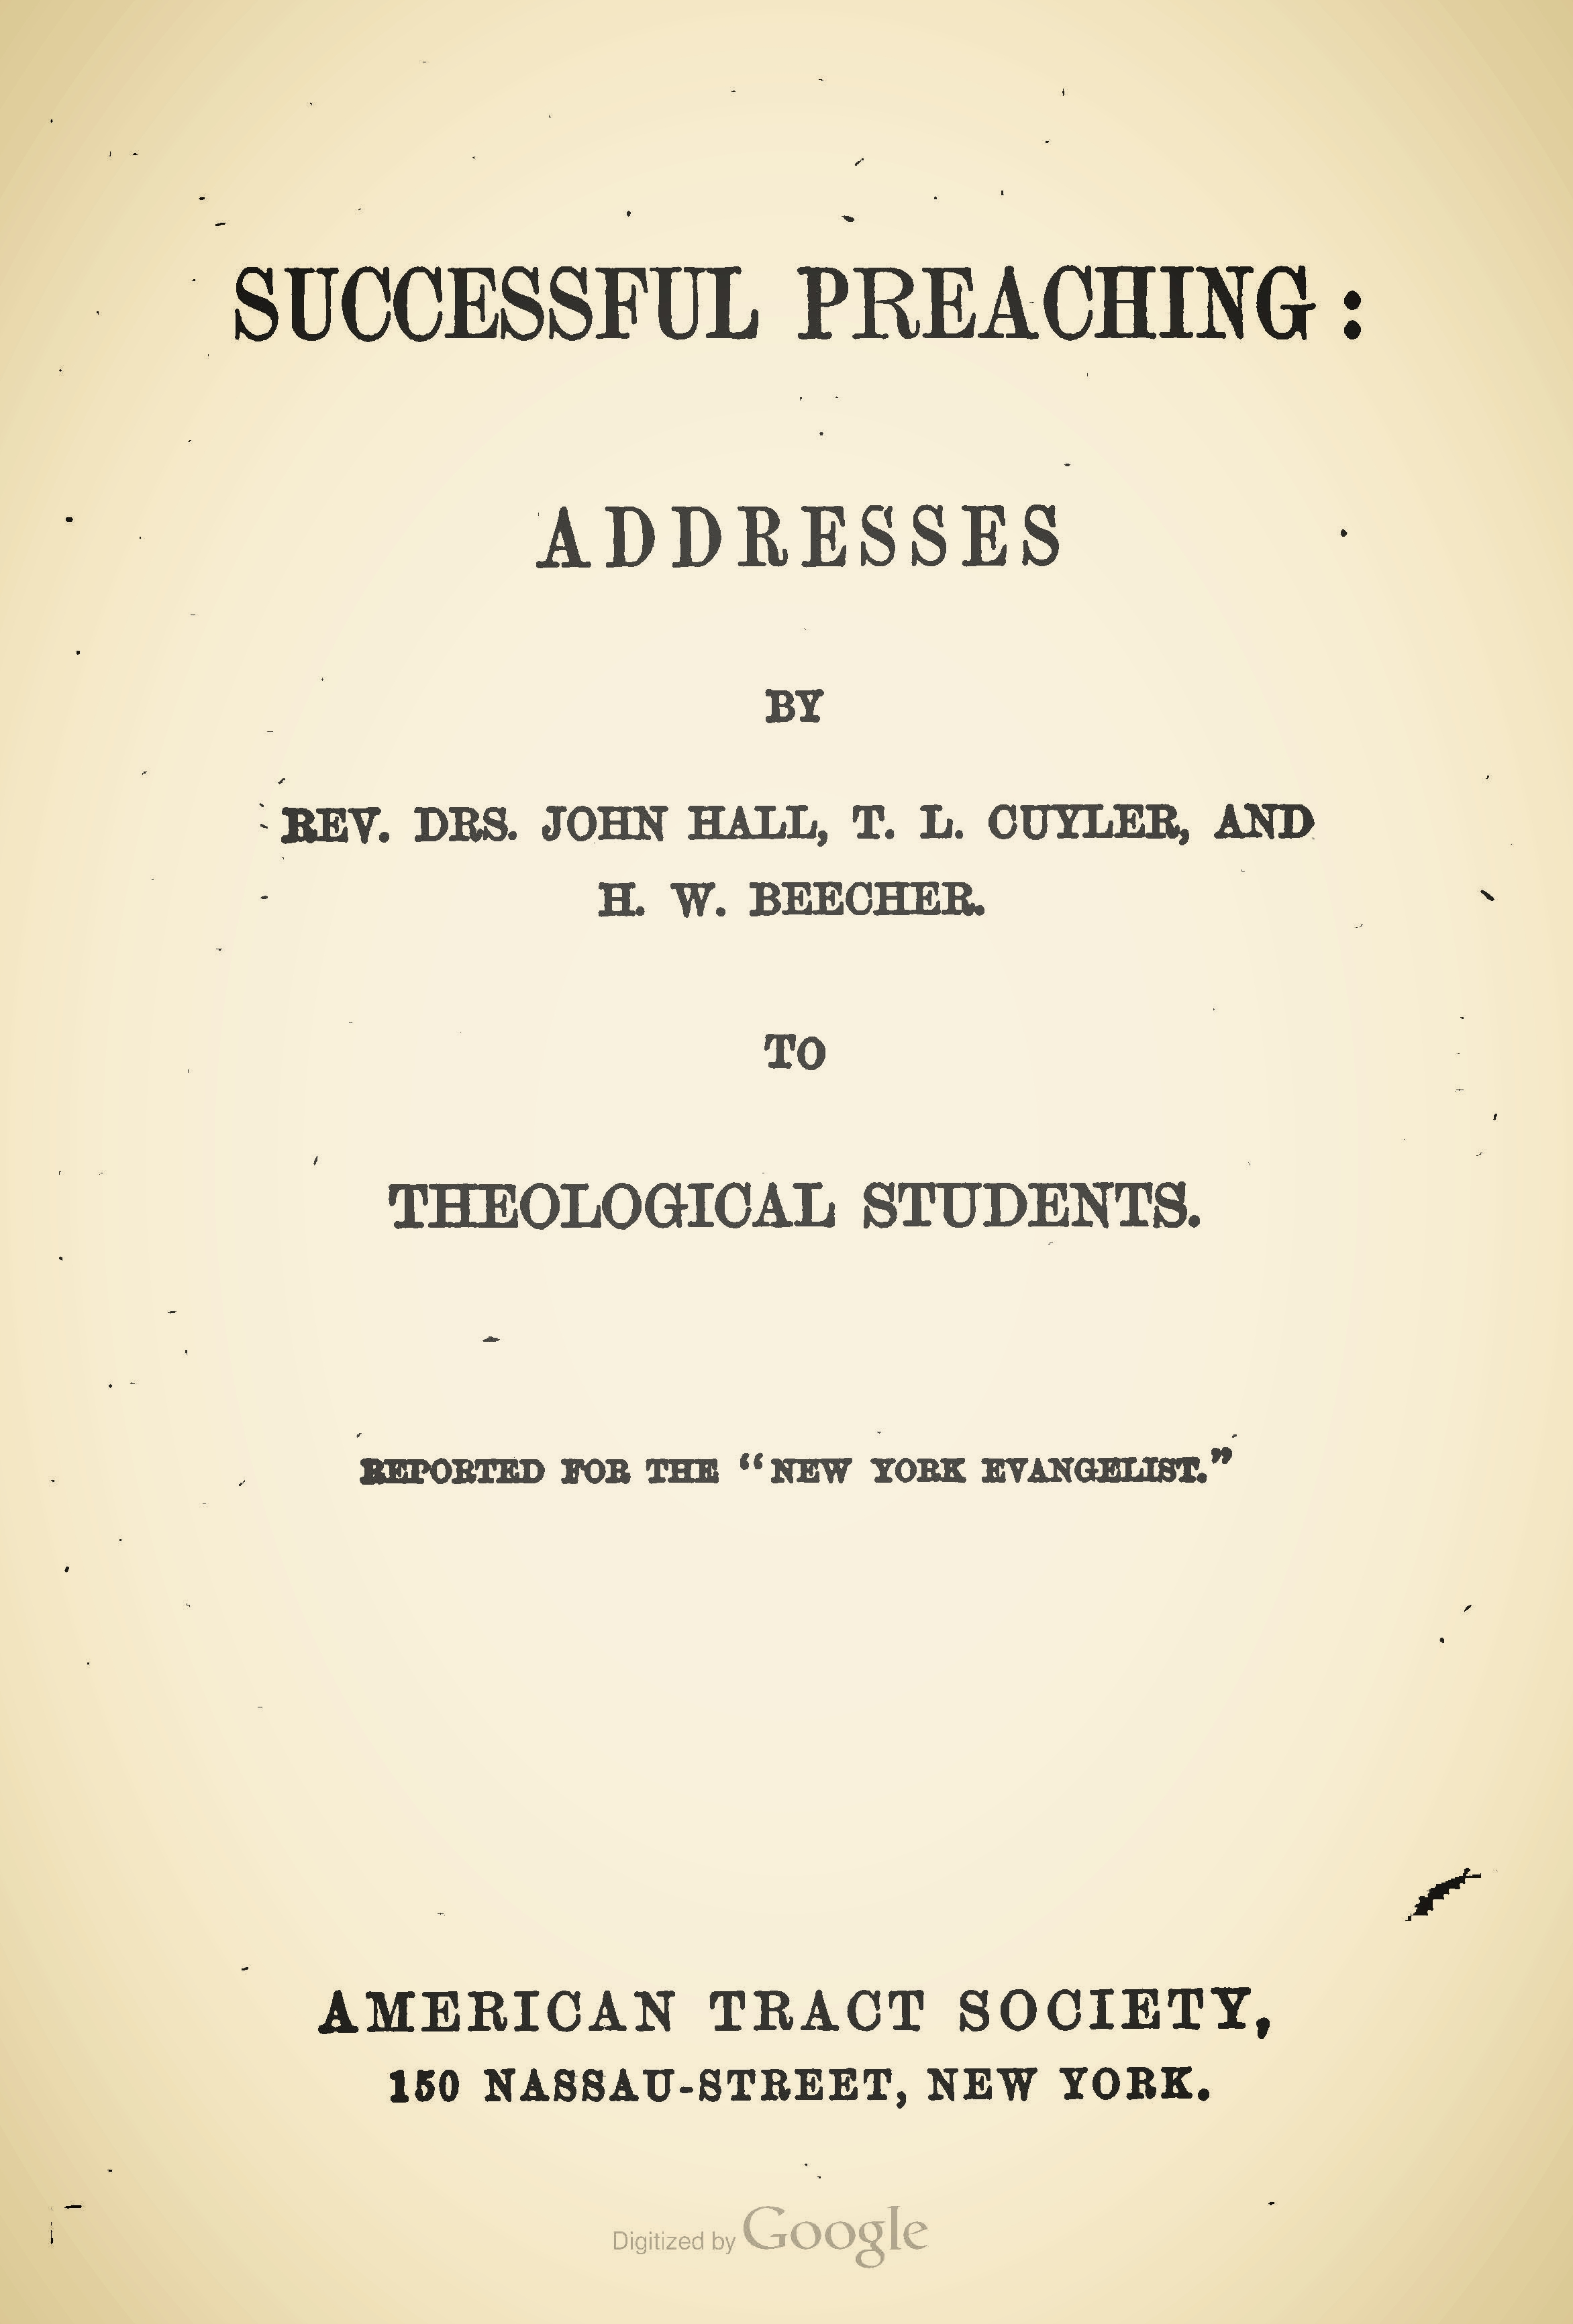 Hall, John, Successful Preaching Title Page.jpg